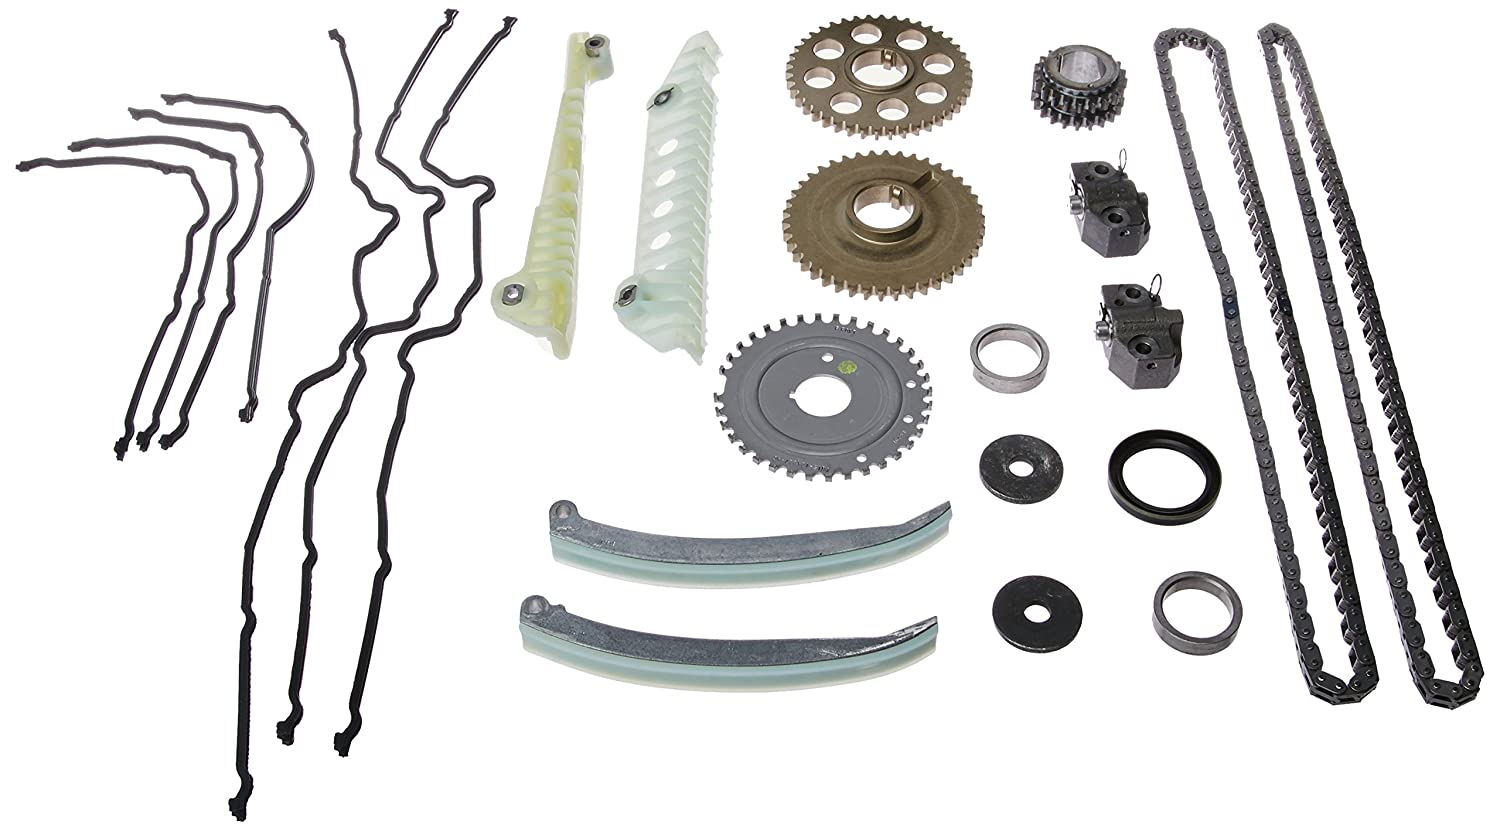 Ford Racing M-6004-462V Camshaft Drive Kit for 4.6L 2V Engine